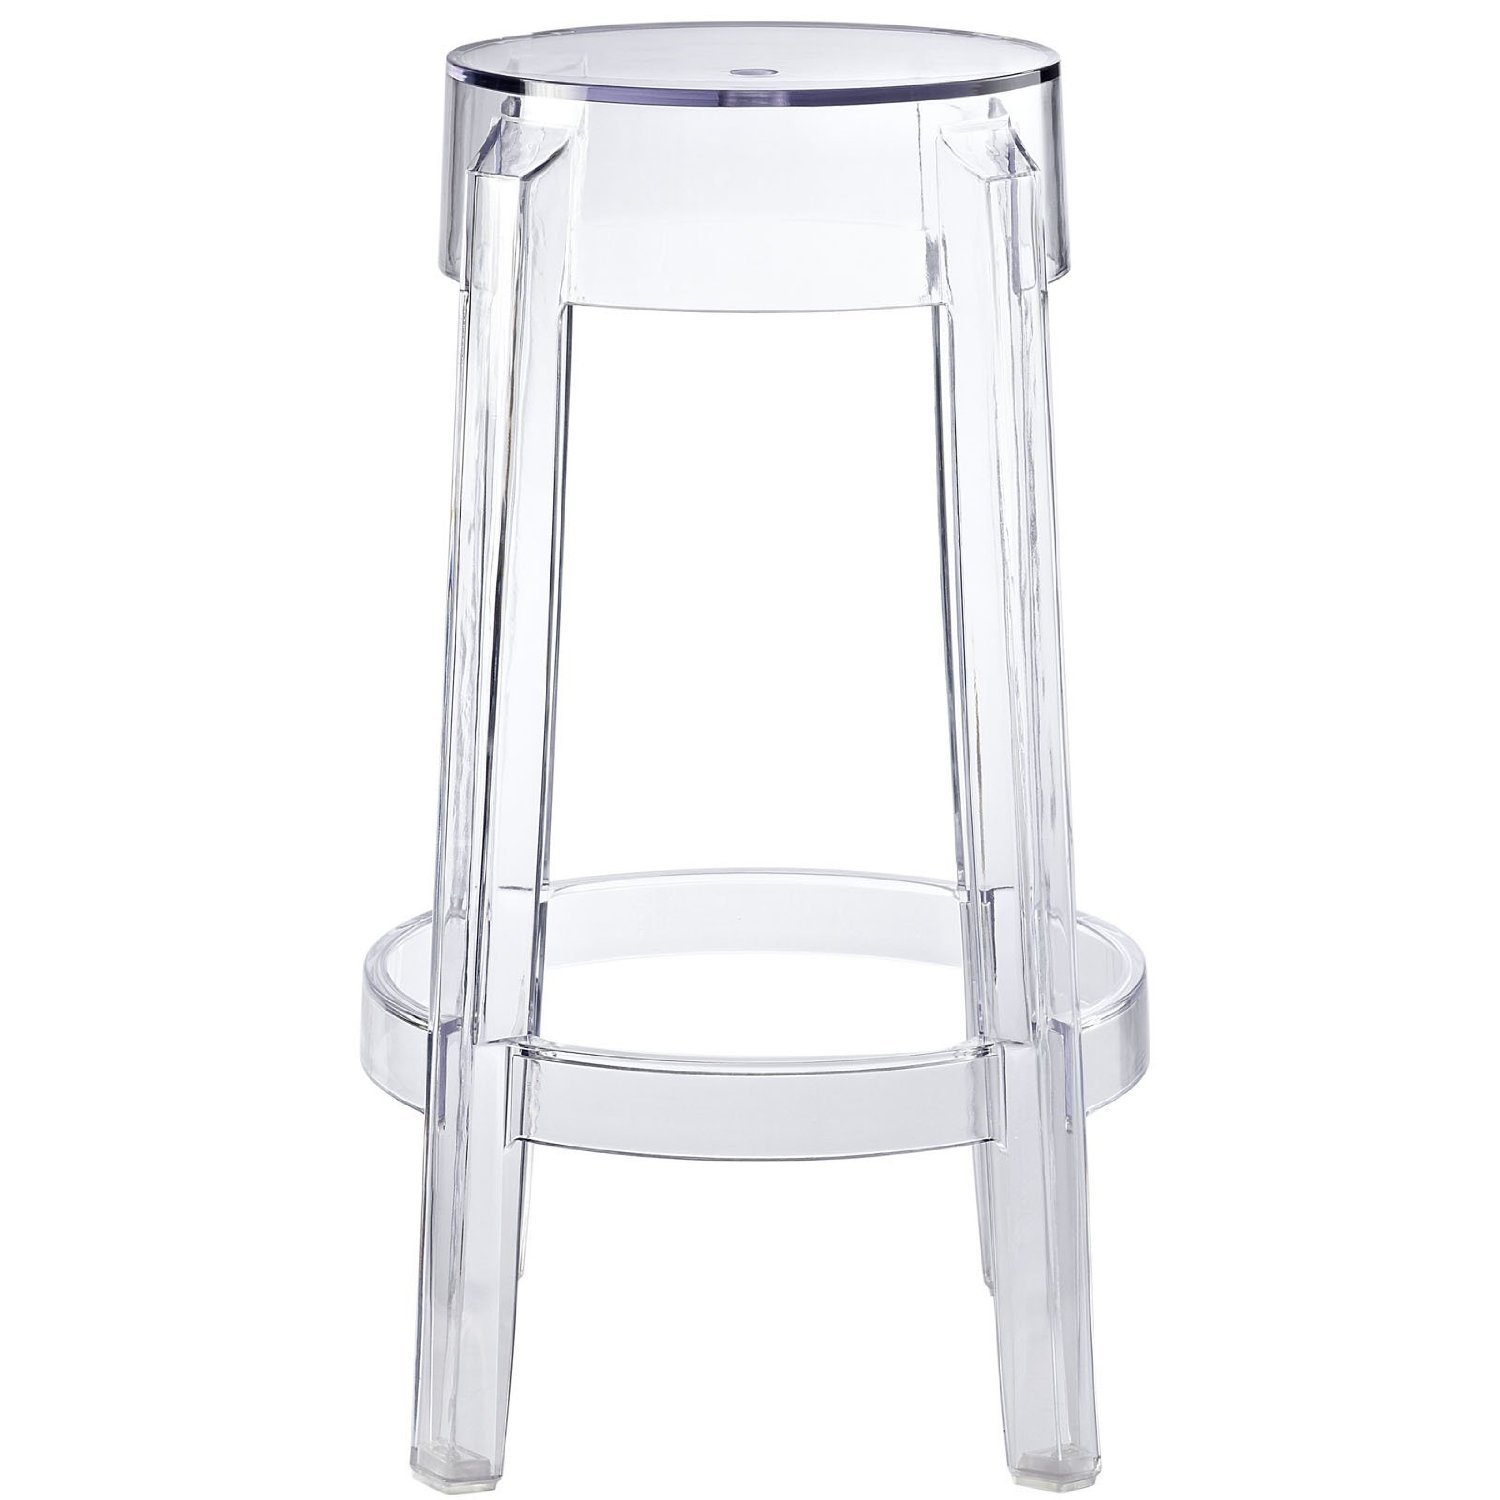 replica philippe starck charles ghost stool transparent counter  - replica philippe starck charles ghost stool transparent counter amazoncahome  kitchen